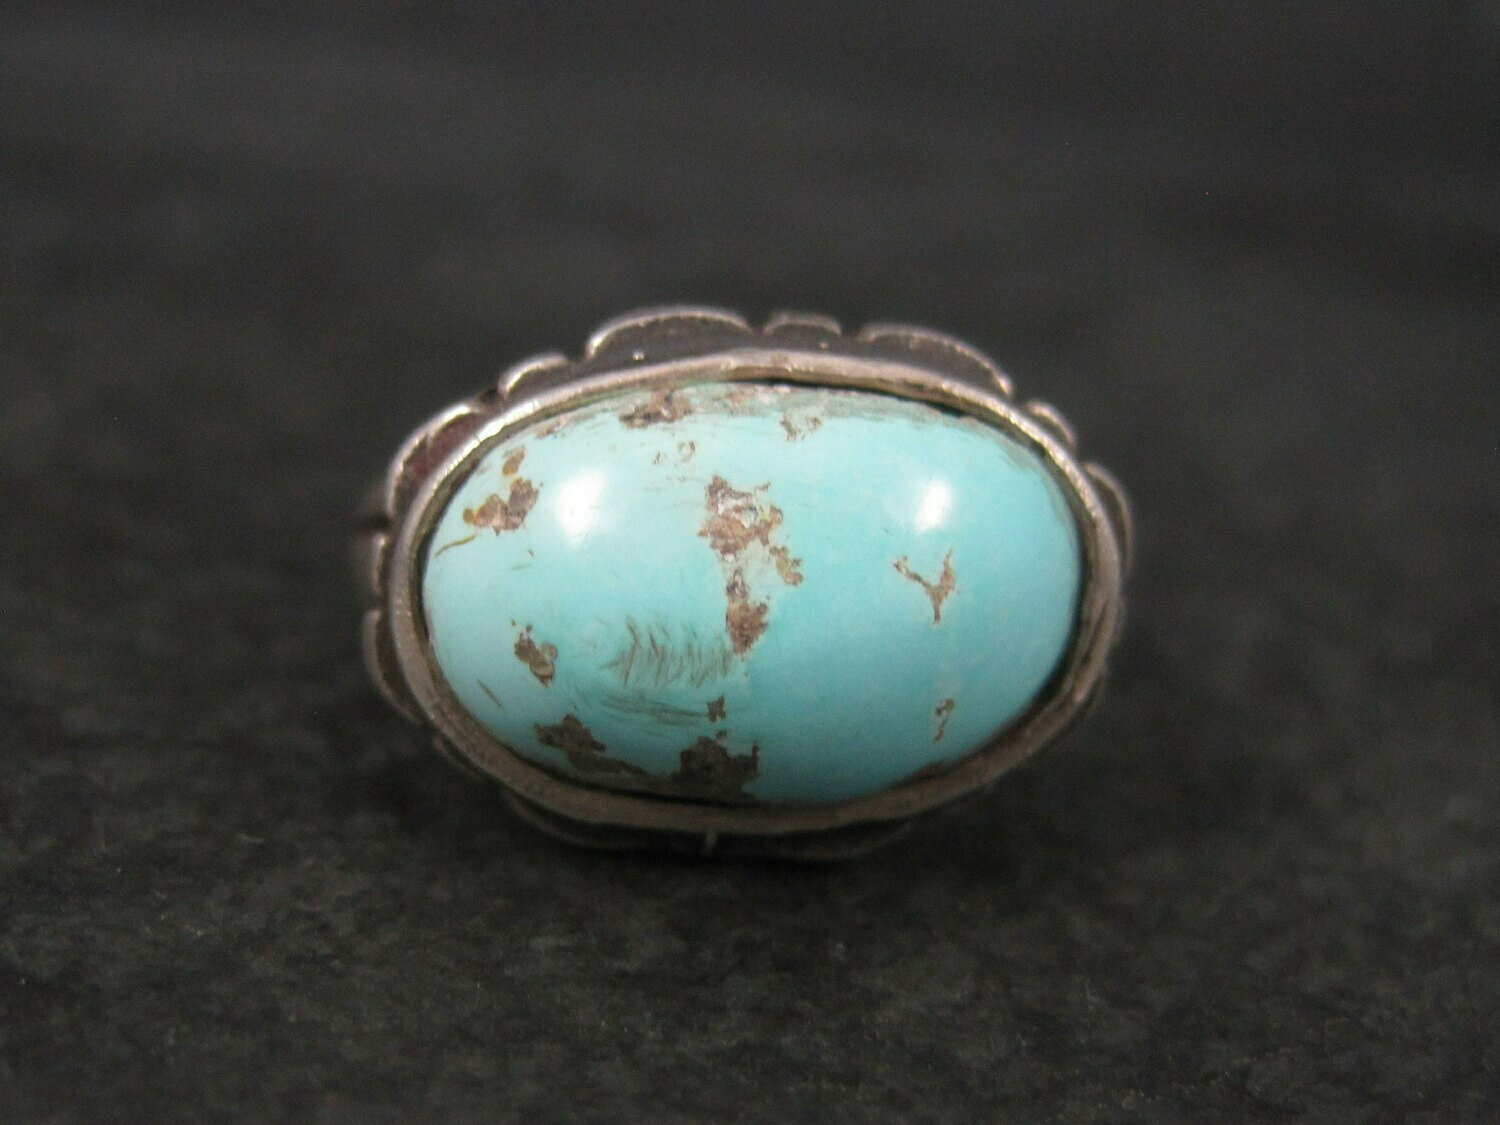 Unusual Vintage Sterling Turquoise Ring Size 9.75